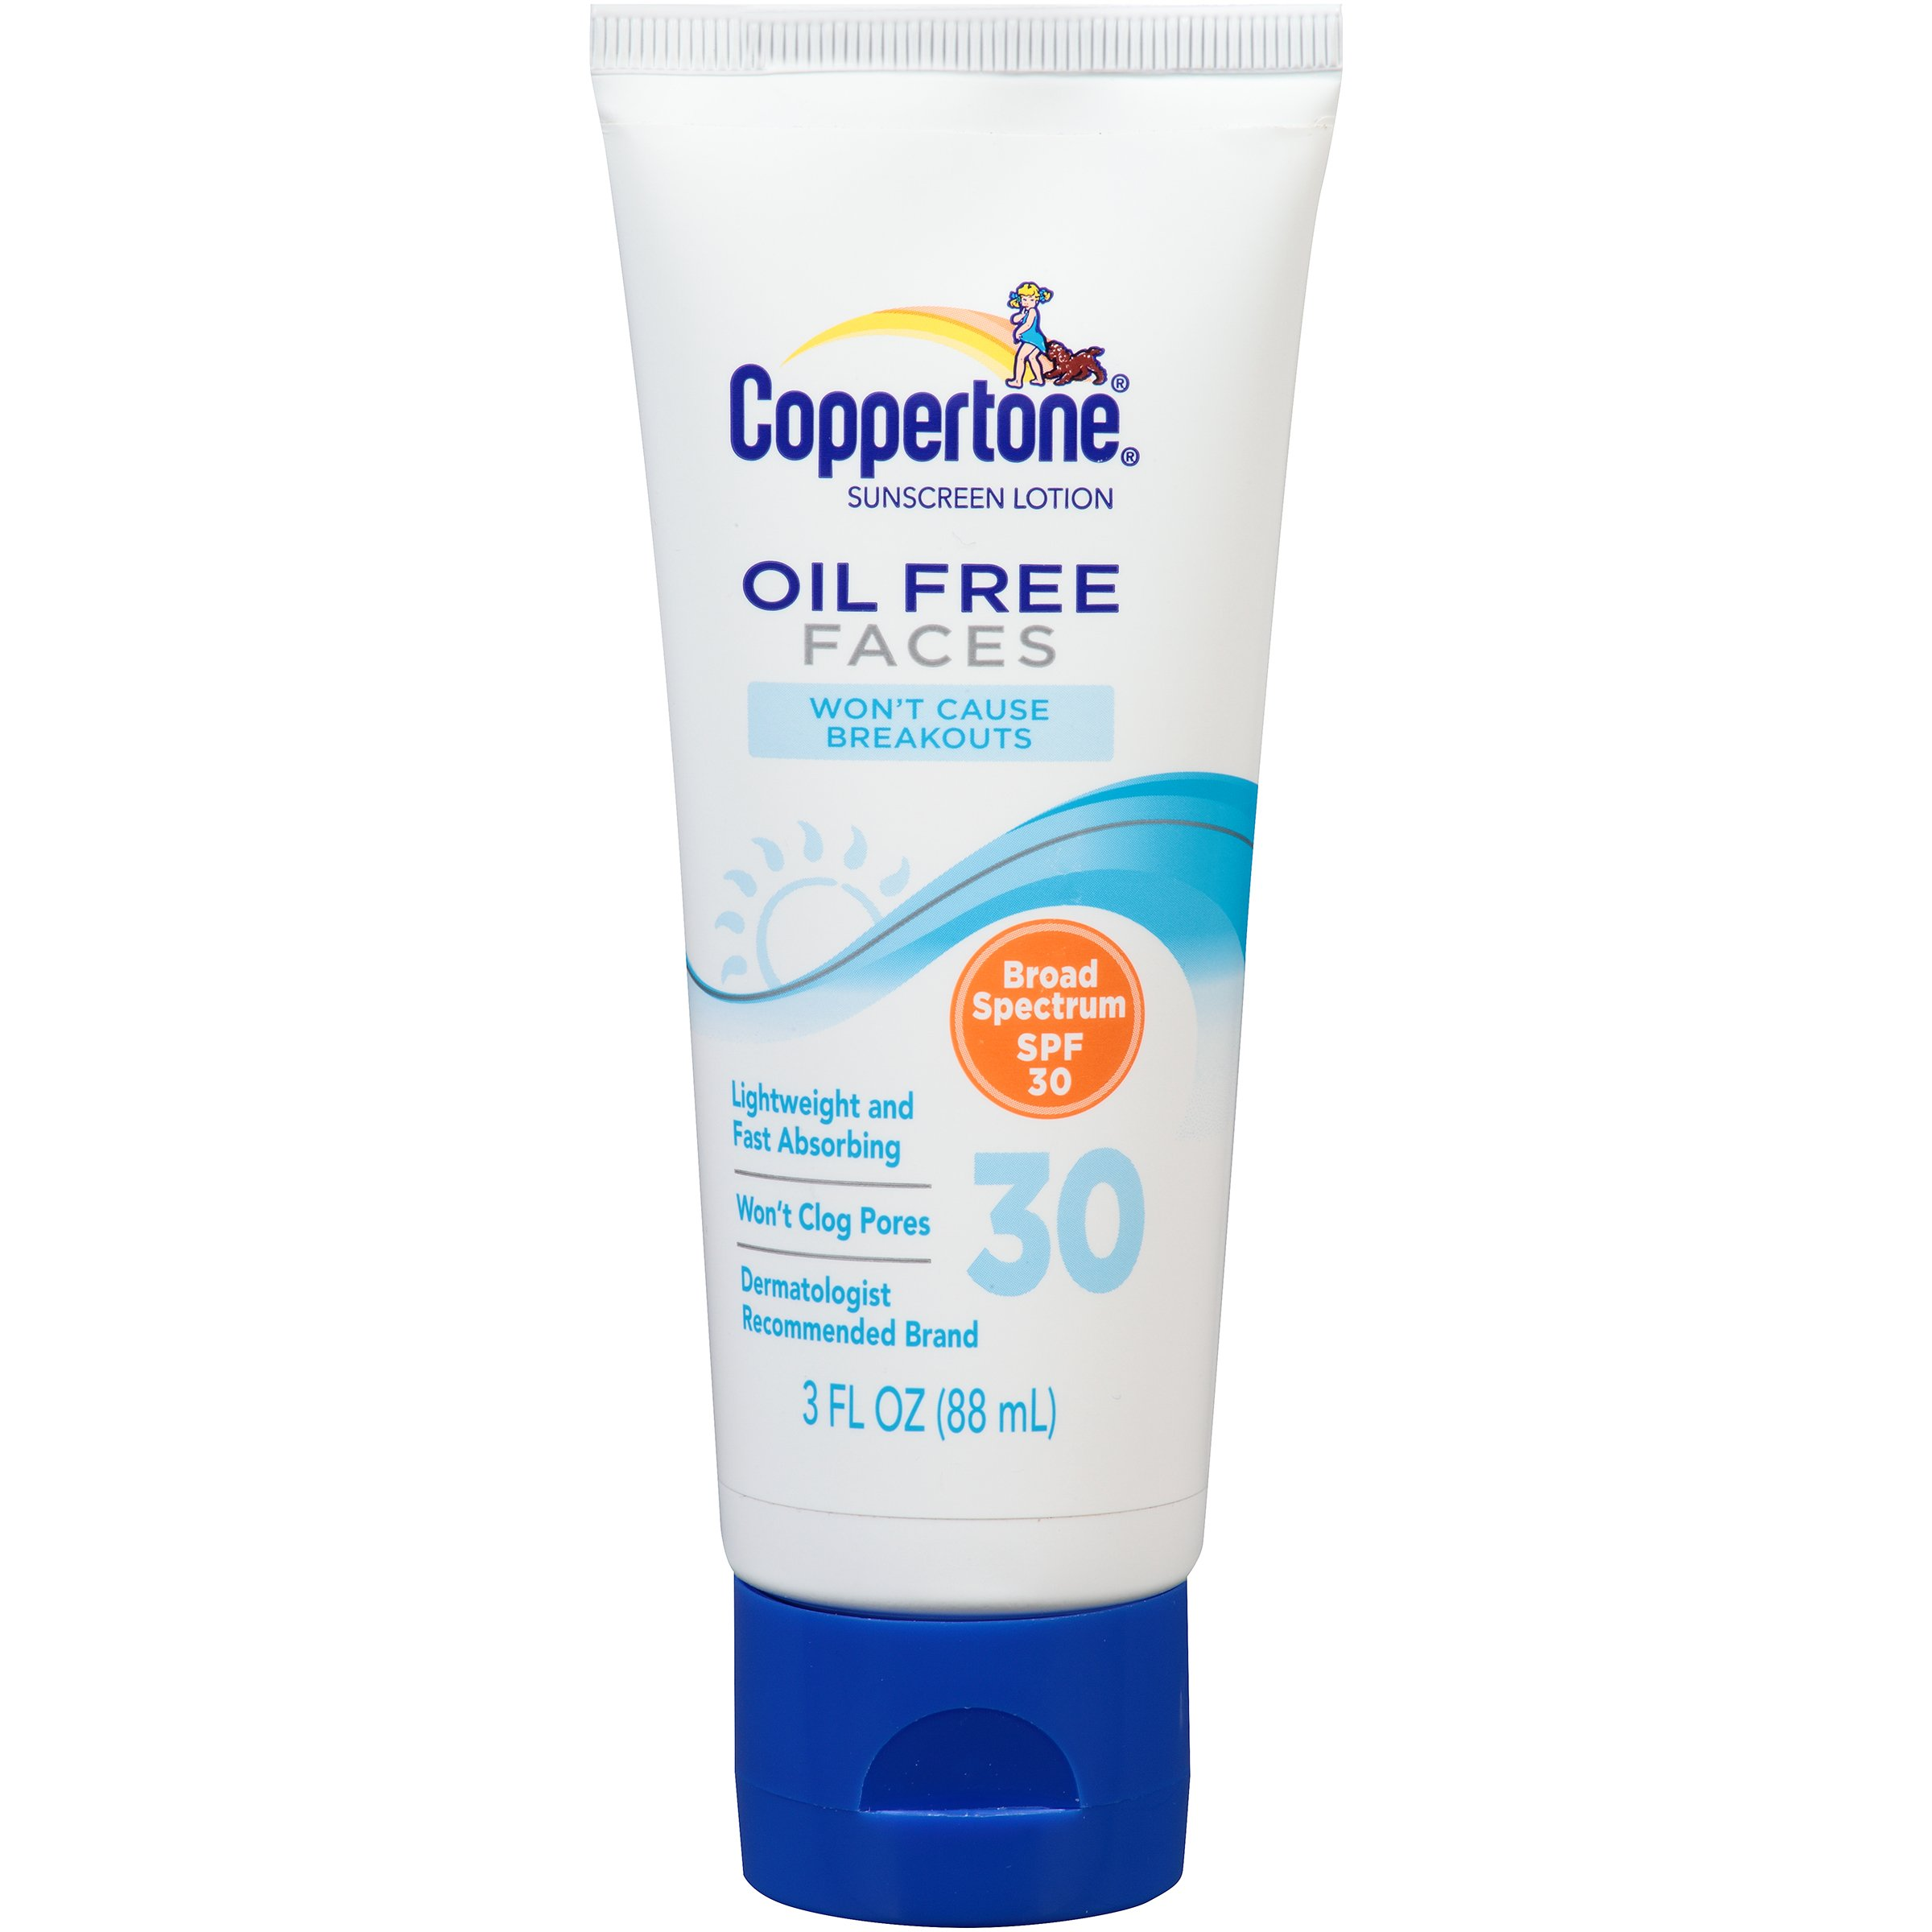 Coppertone Oil Free Faces SPF 30, 3 Fluid Ounce